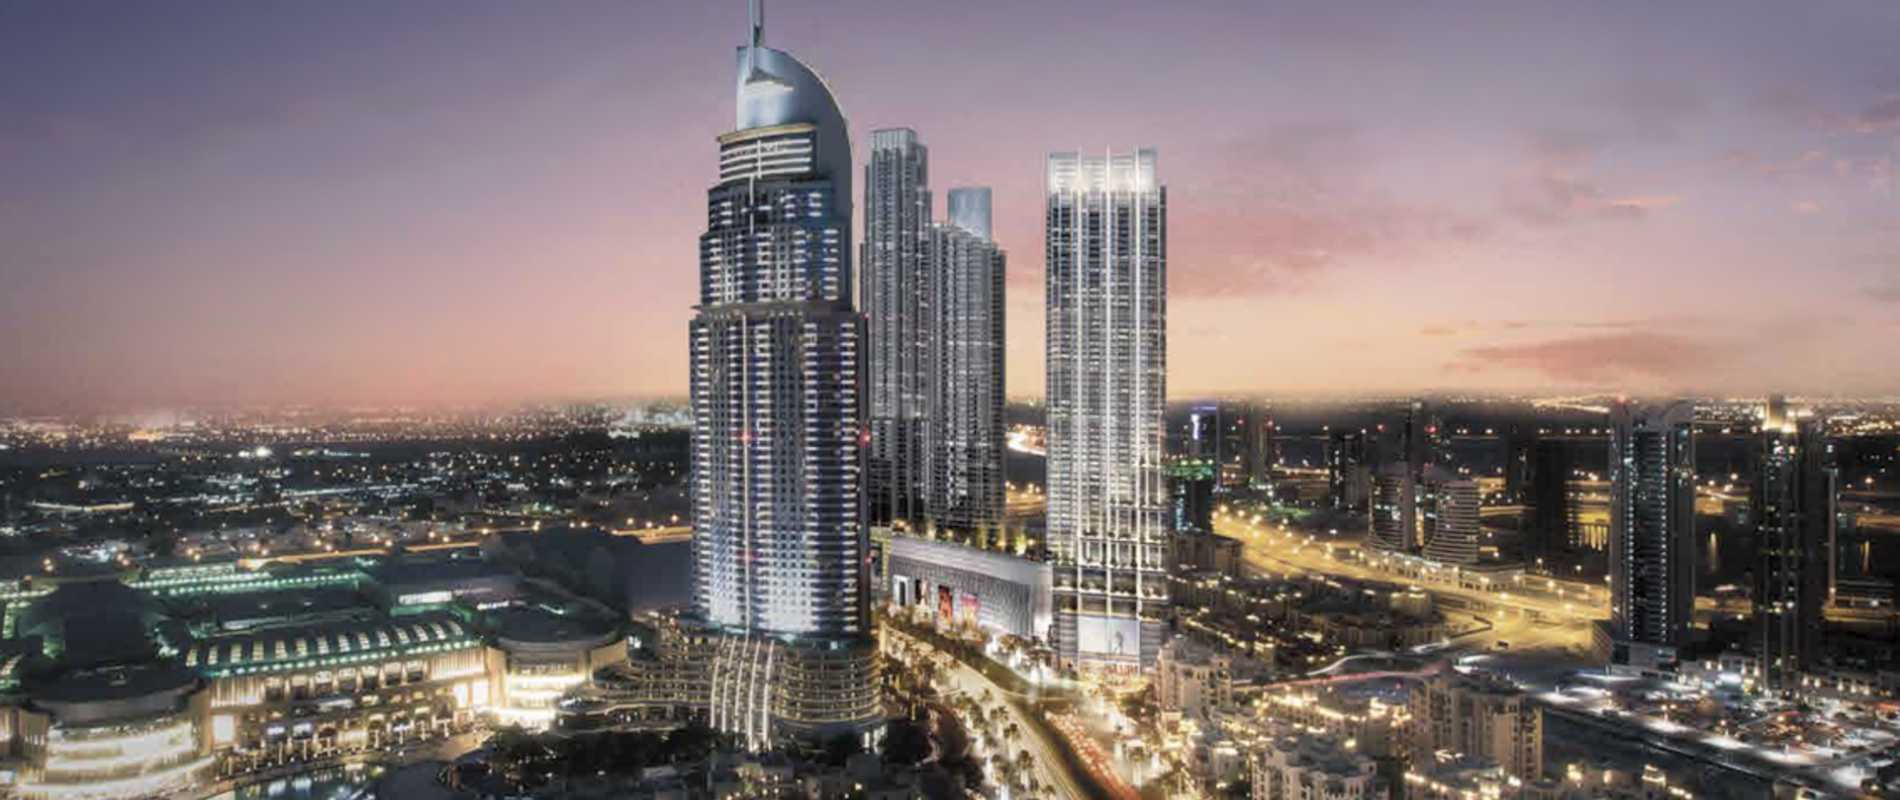 Luxury Property Dubai 3 Bedroom Apartment for sale in Boulevard Point Downtown Dubai